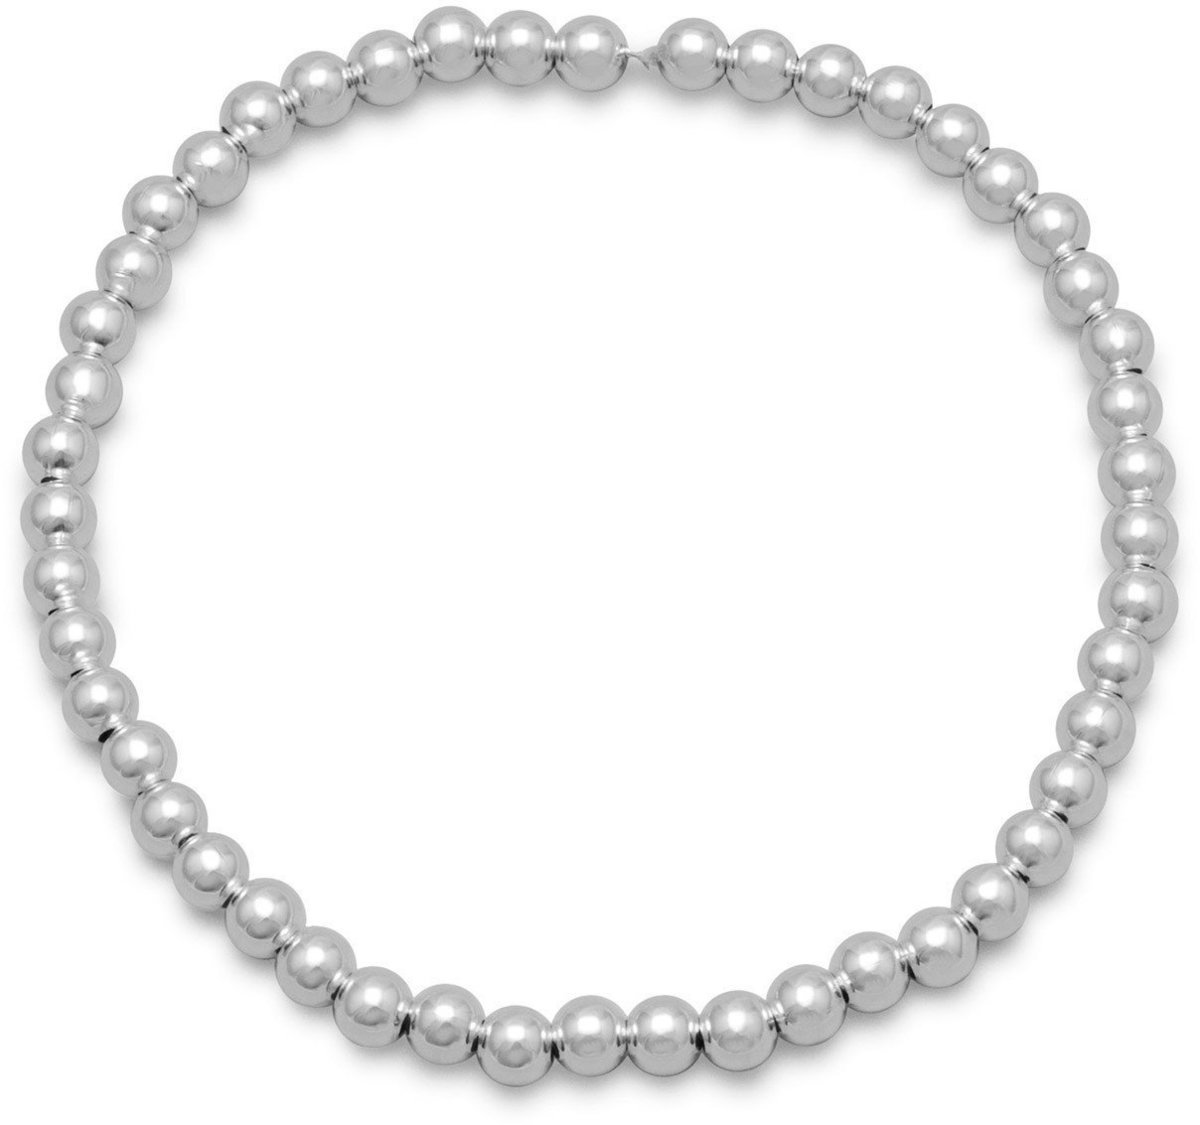 "7"" 4mm (1/6"") Sterling Silver Bead Stretch Bracelet"